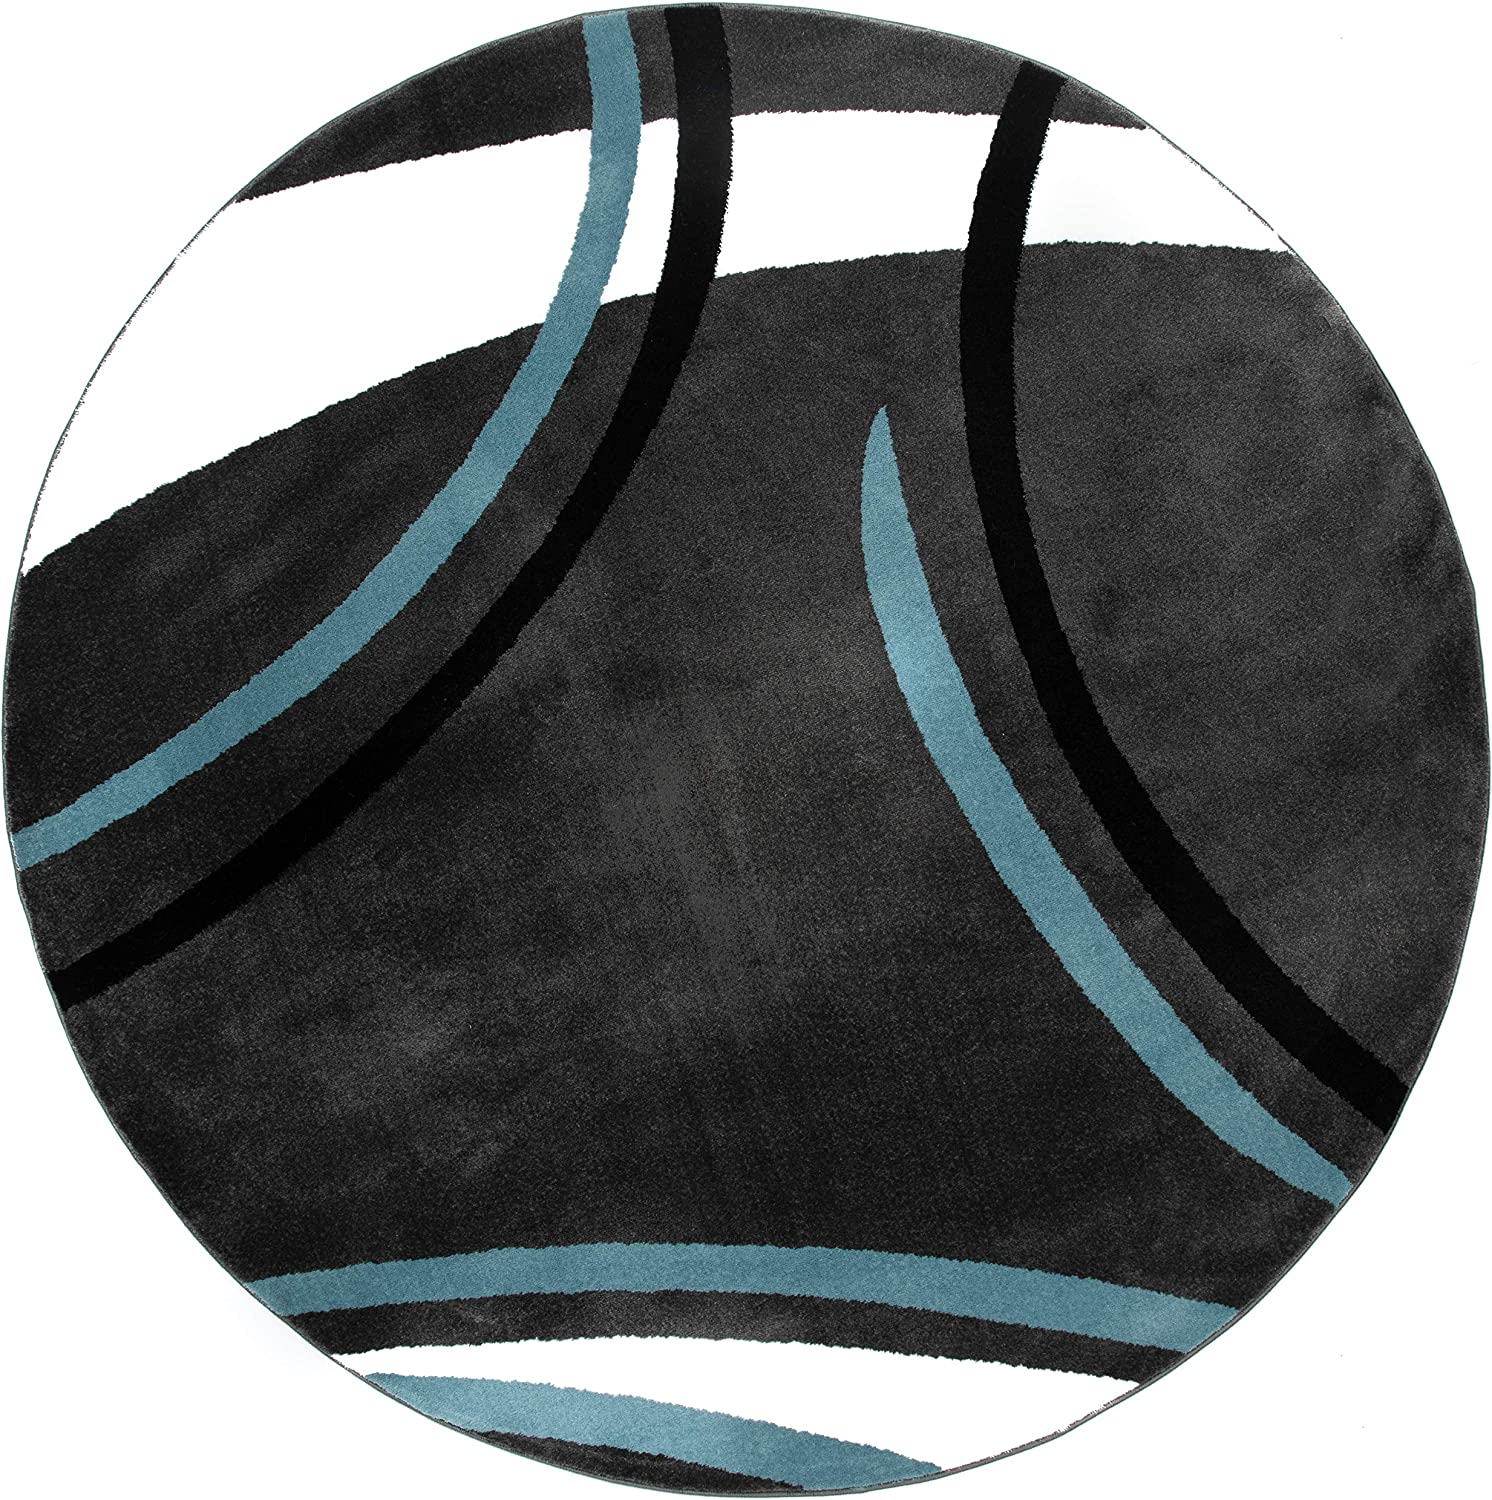 Rugshop Challenge the lowest price of Japan Contemporary Modern Wavy Circles 6